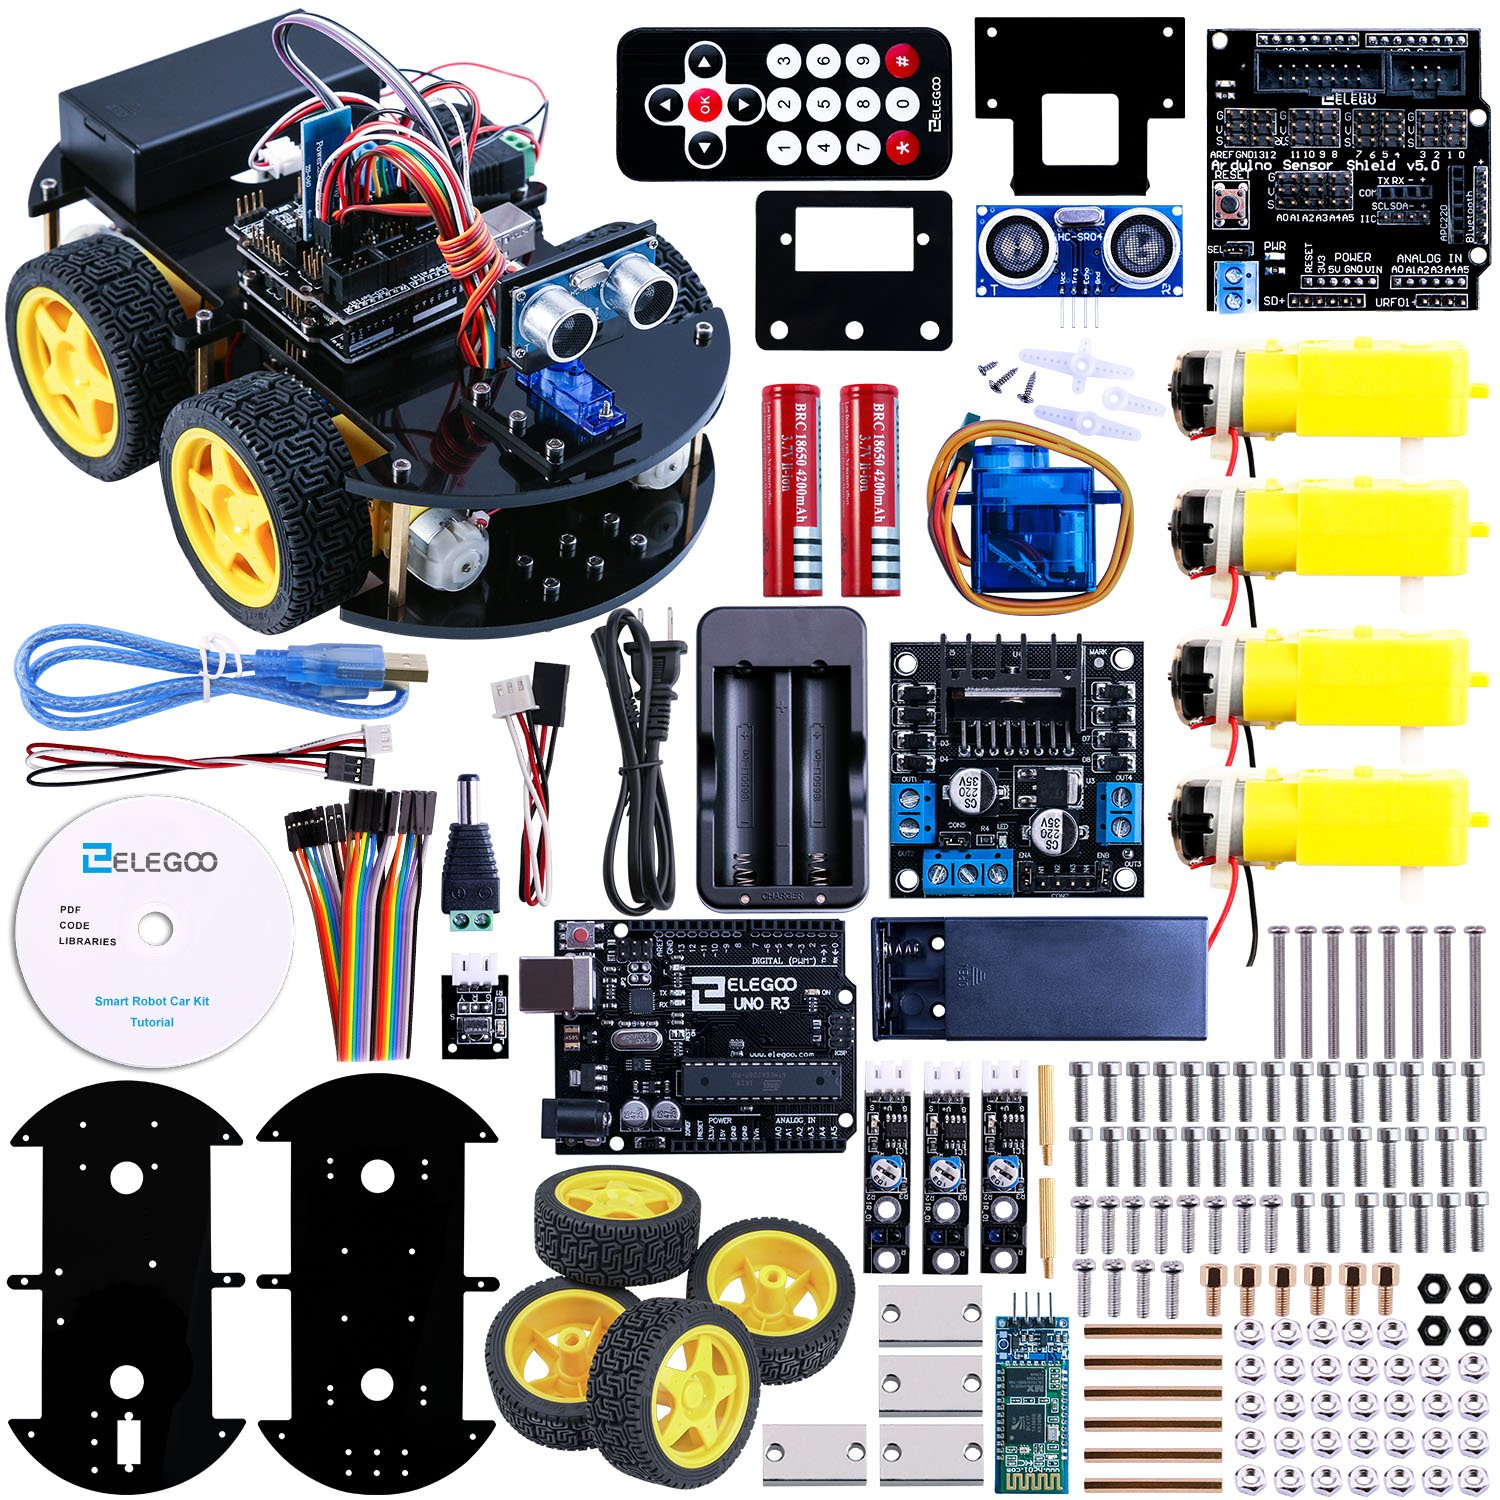 Elegoo for Arduino Project Smart Robot Car Kit with Four-wheel Drives, UNO R3, Link Tracking Module, Ultrasonic Sensor, Bluetooth module, Remote Intelligent and Educational Car for Teens and Adults